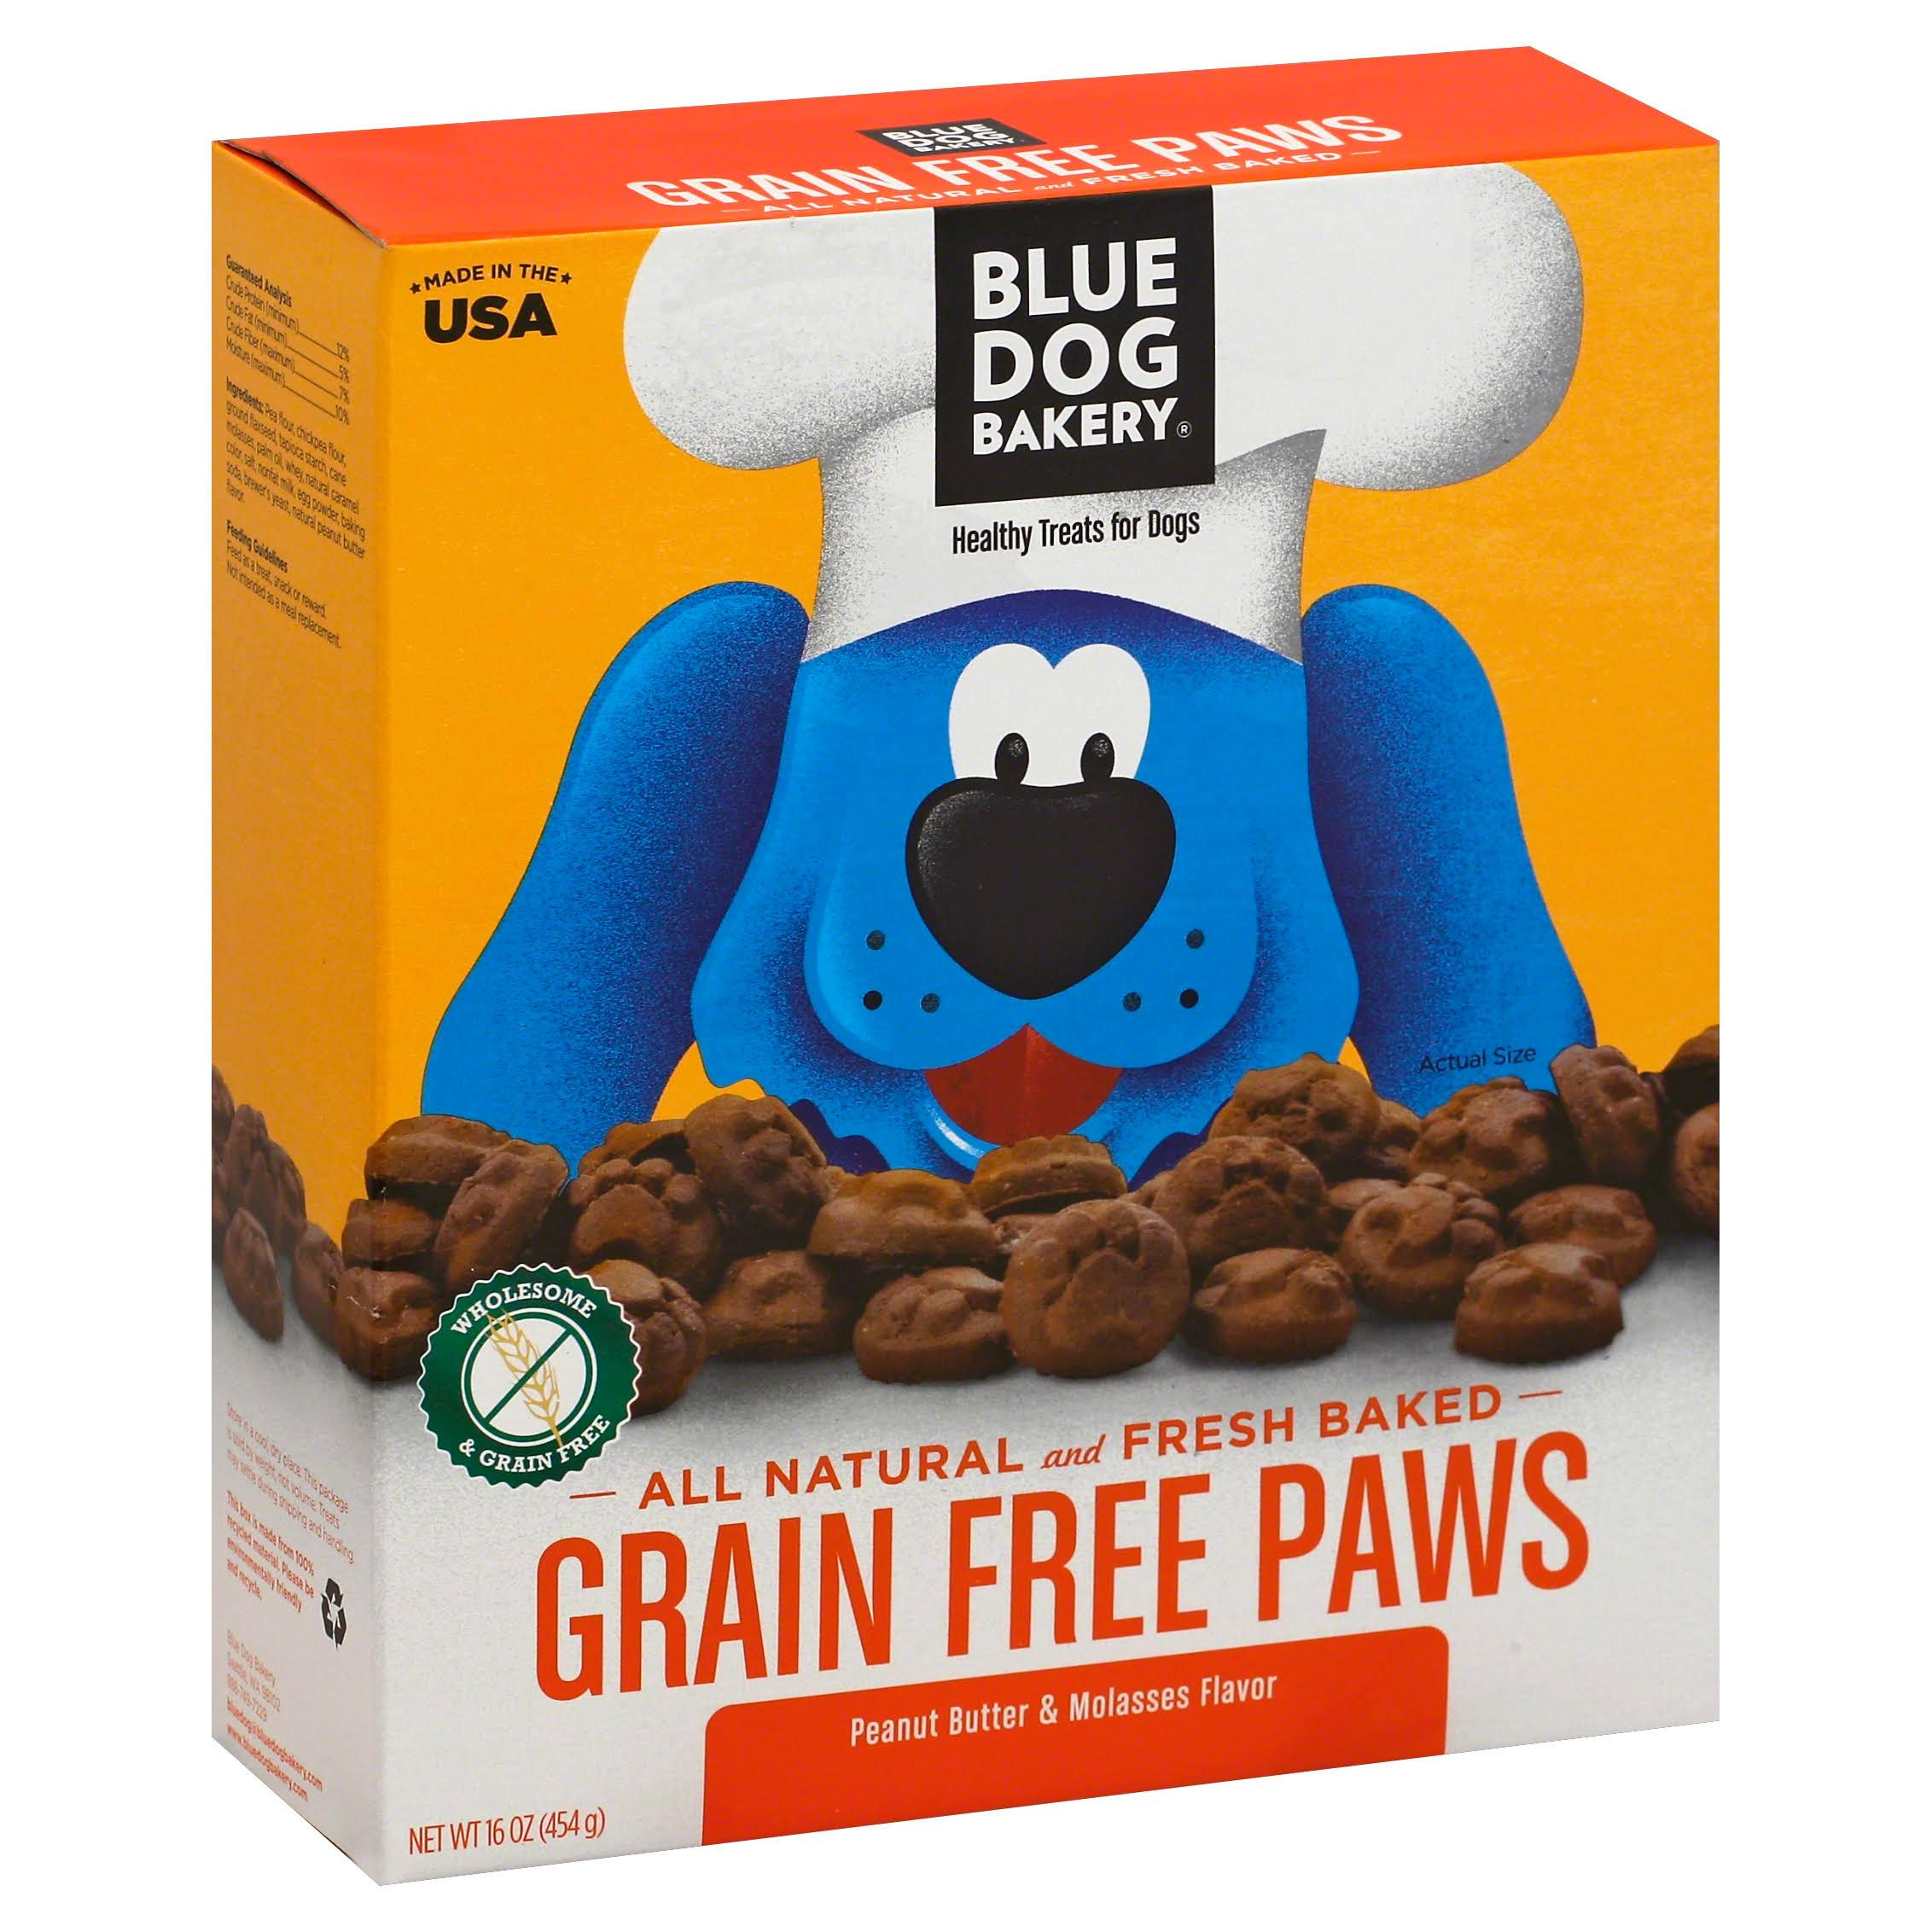 Blue Dog Bakery Healthy Treats For Dogs Grain Free Paws - Peanut Butter & Molasses